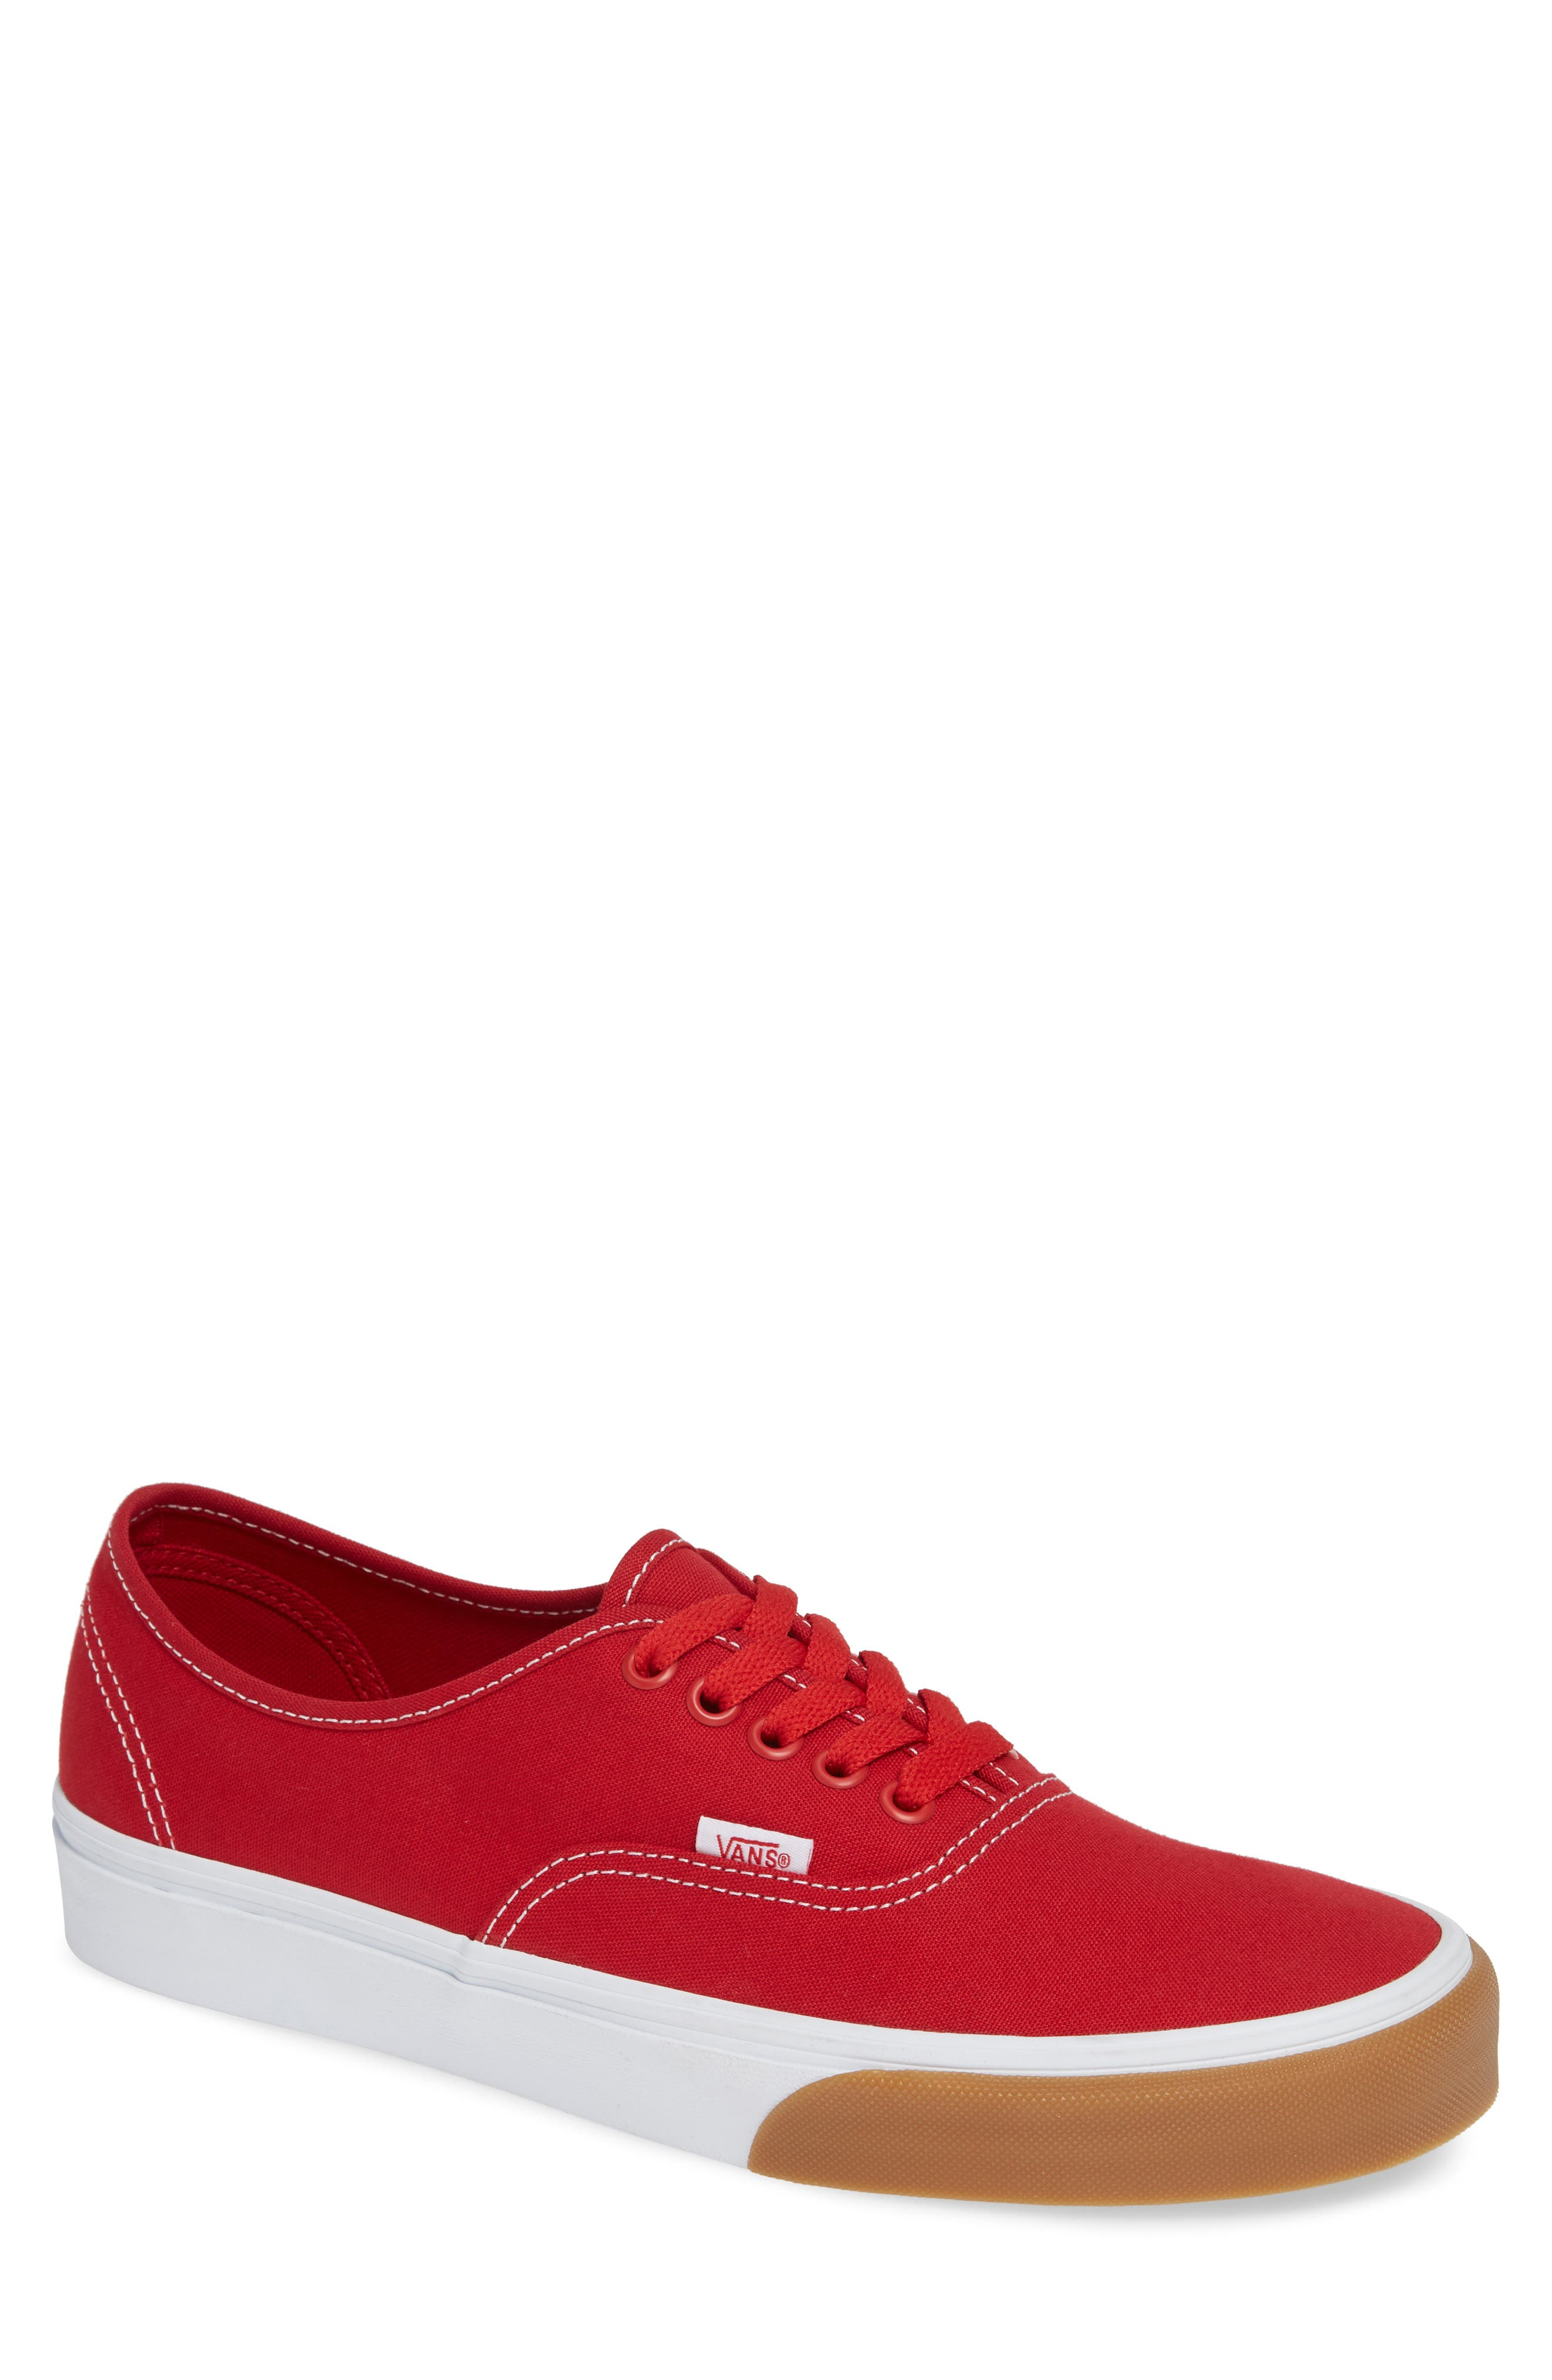 Vans - Men s Casual Fashion Shoes and Sneakers 080bd7dd0c423